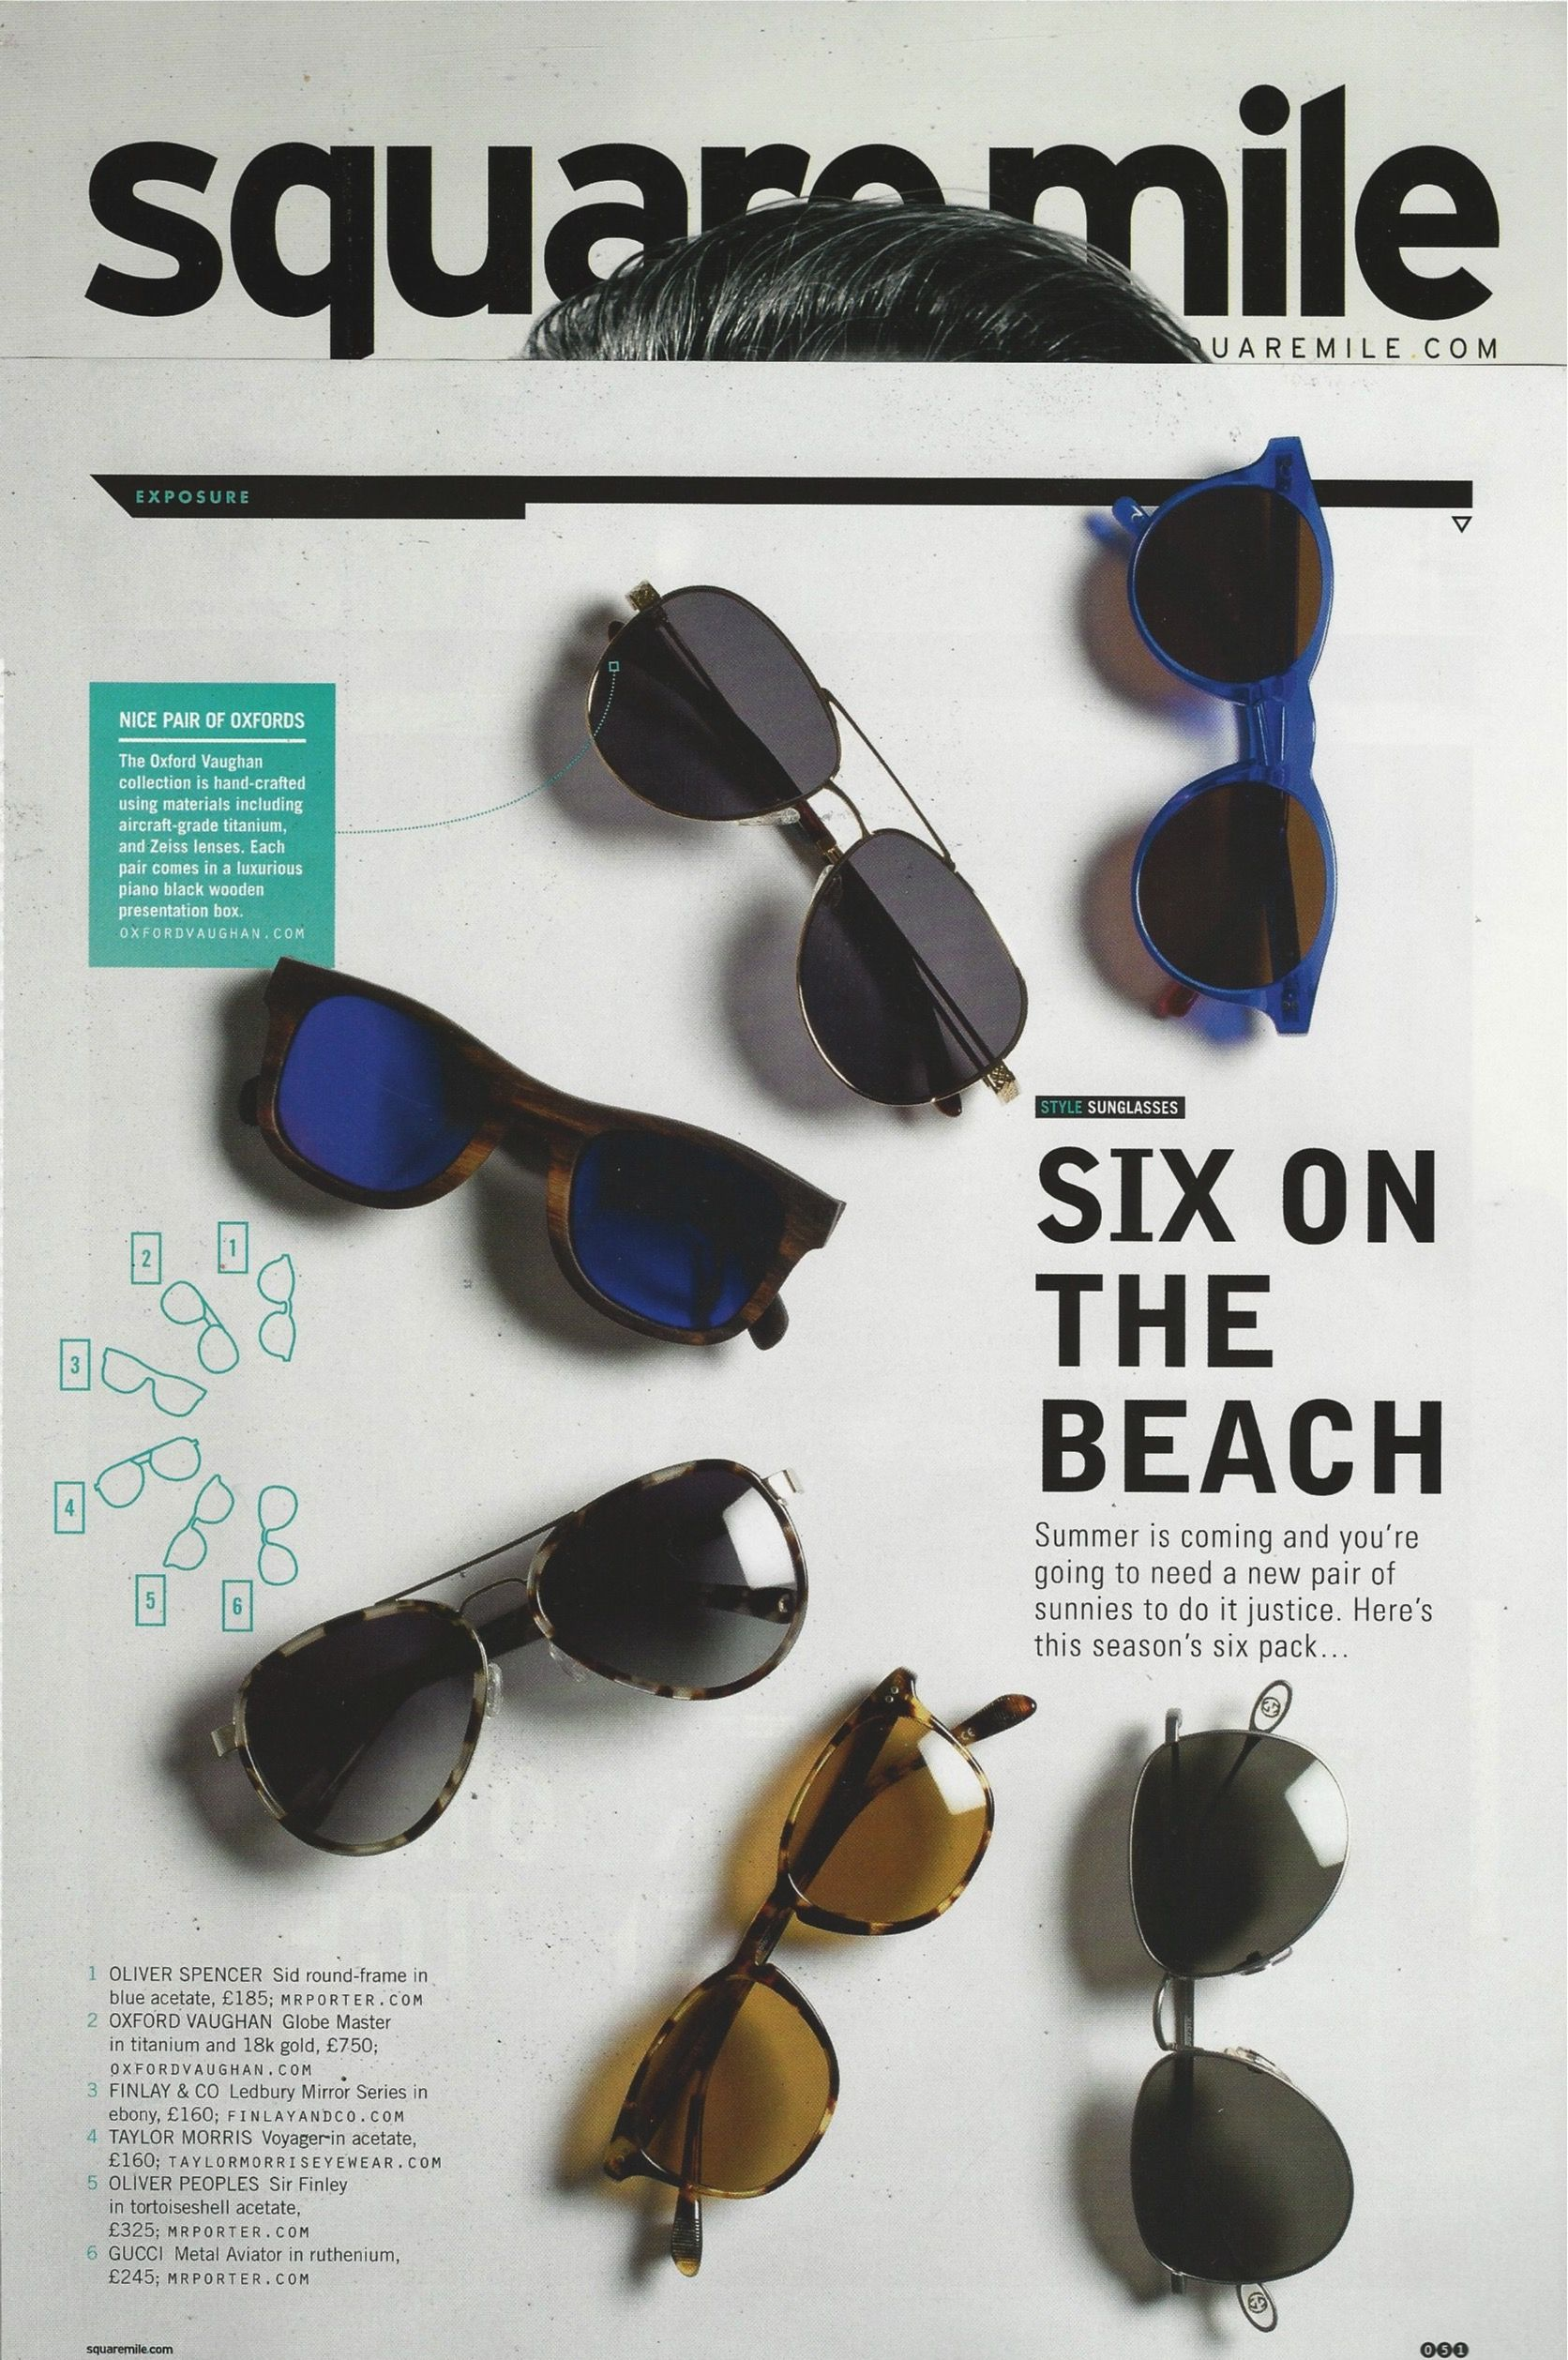 e16d22fdd8d3 Square Mile Magazine choose the Voyager Tortoiseshell in Acetate sunglasses  by Taylor Morris for summer.